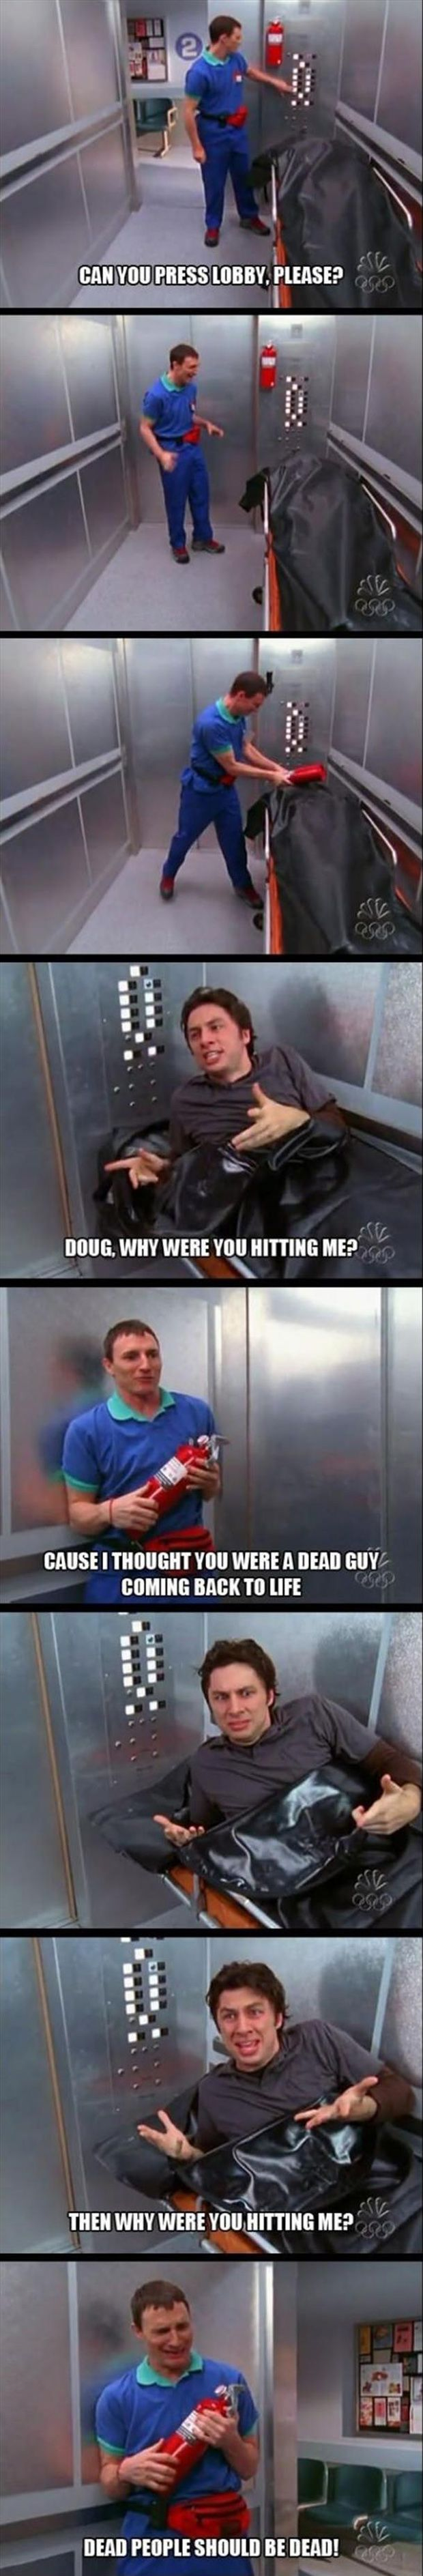 I laugh hysterically every time I watch this scene. Scrubs = best show ever!